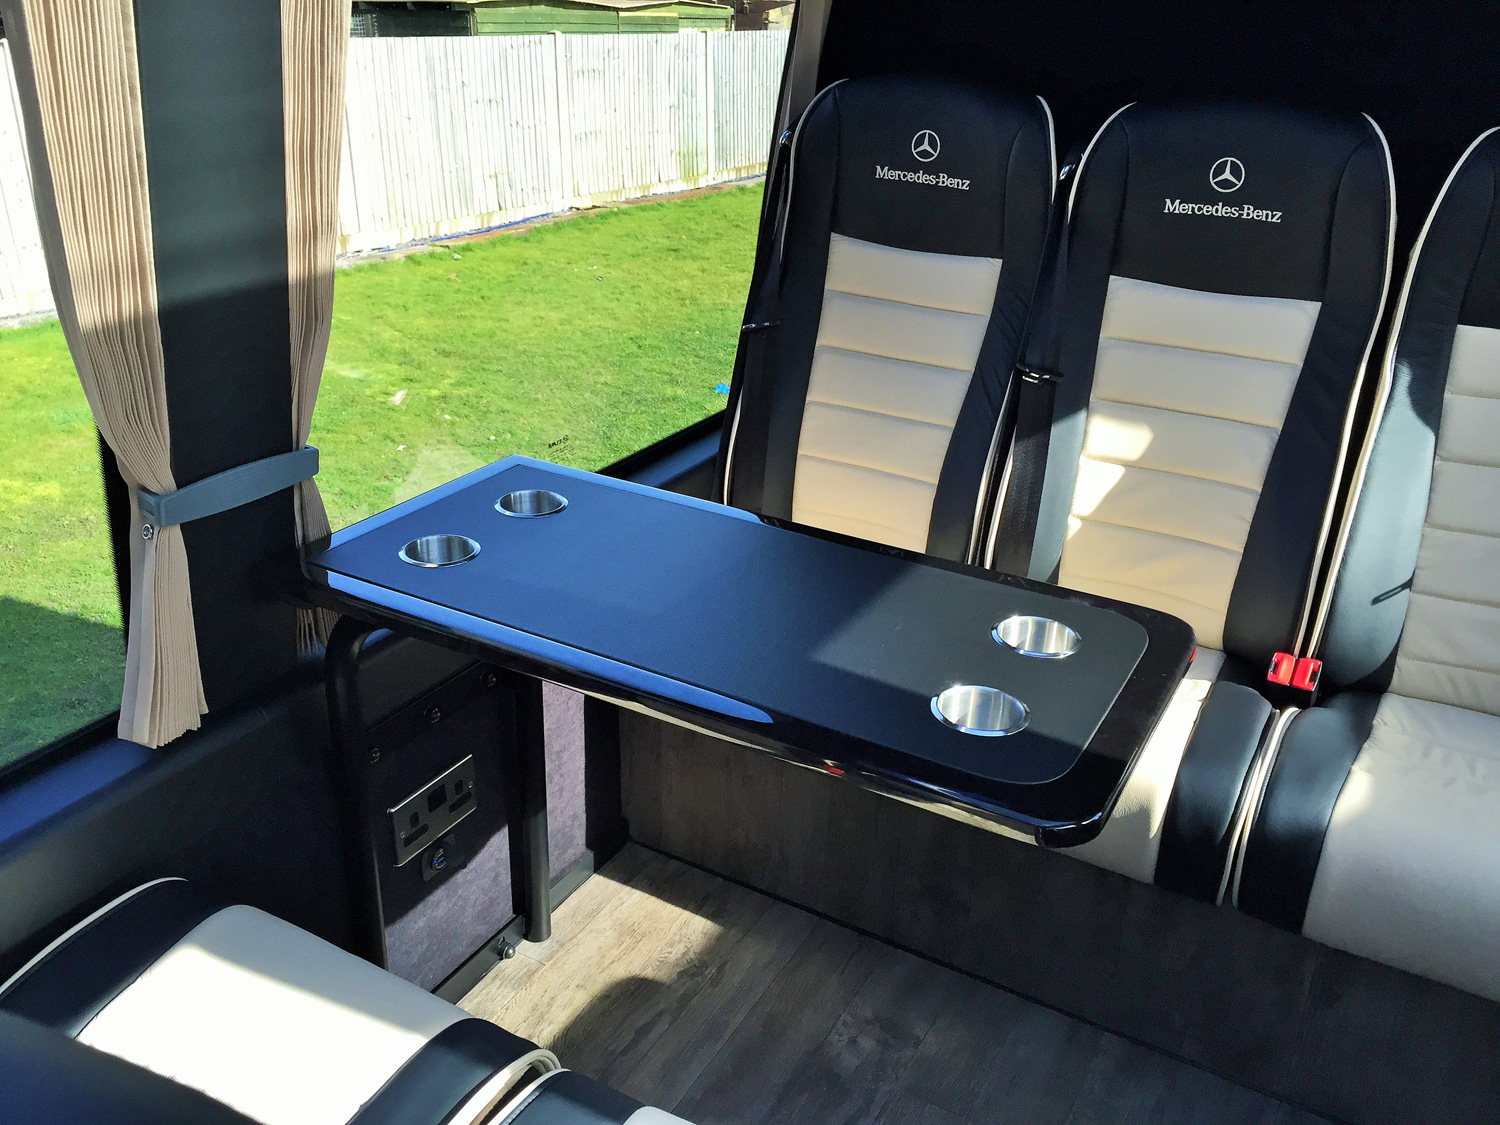 Mercedes-Benz 16 Seater VIP Interior Rear Tables